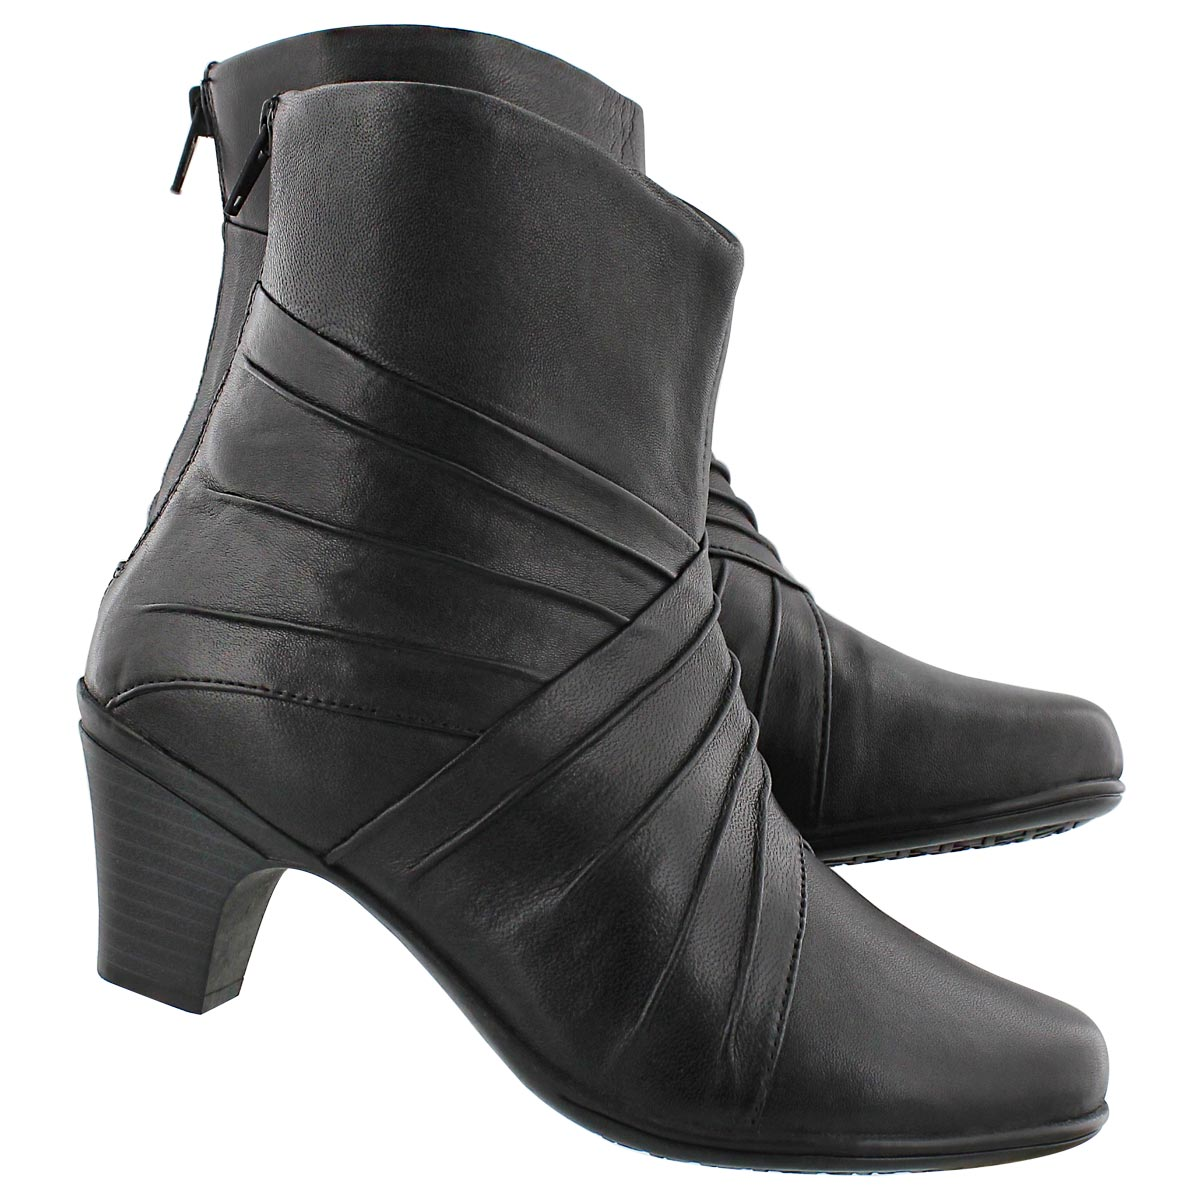 Lds Delilah black dress bootie-wide